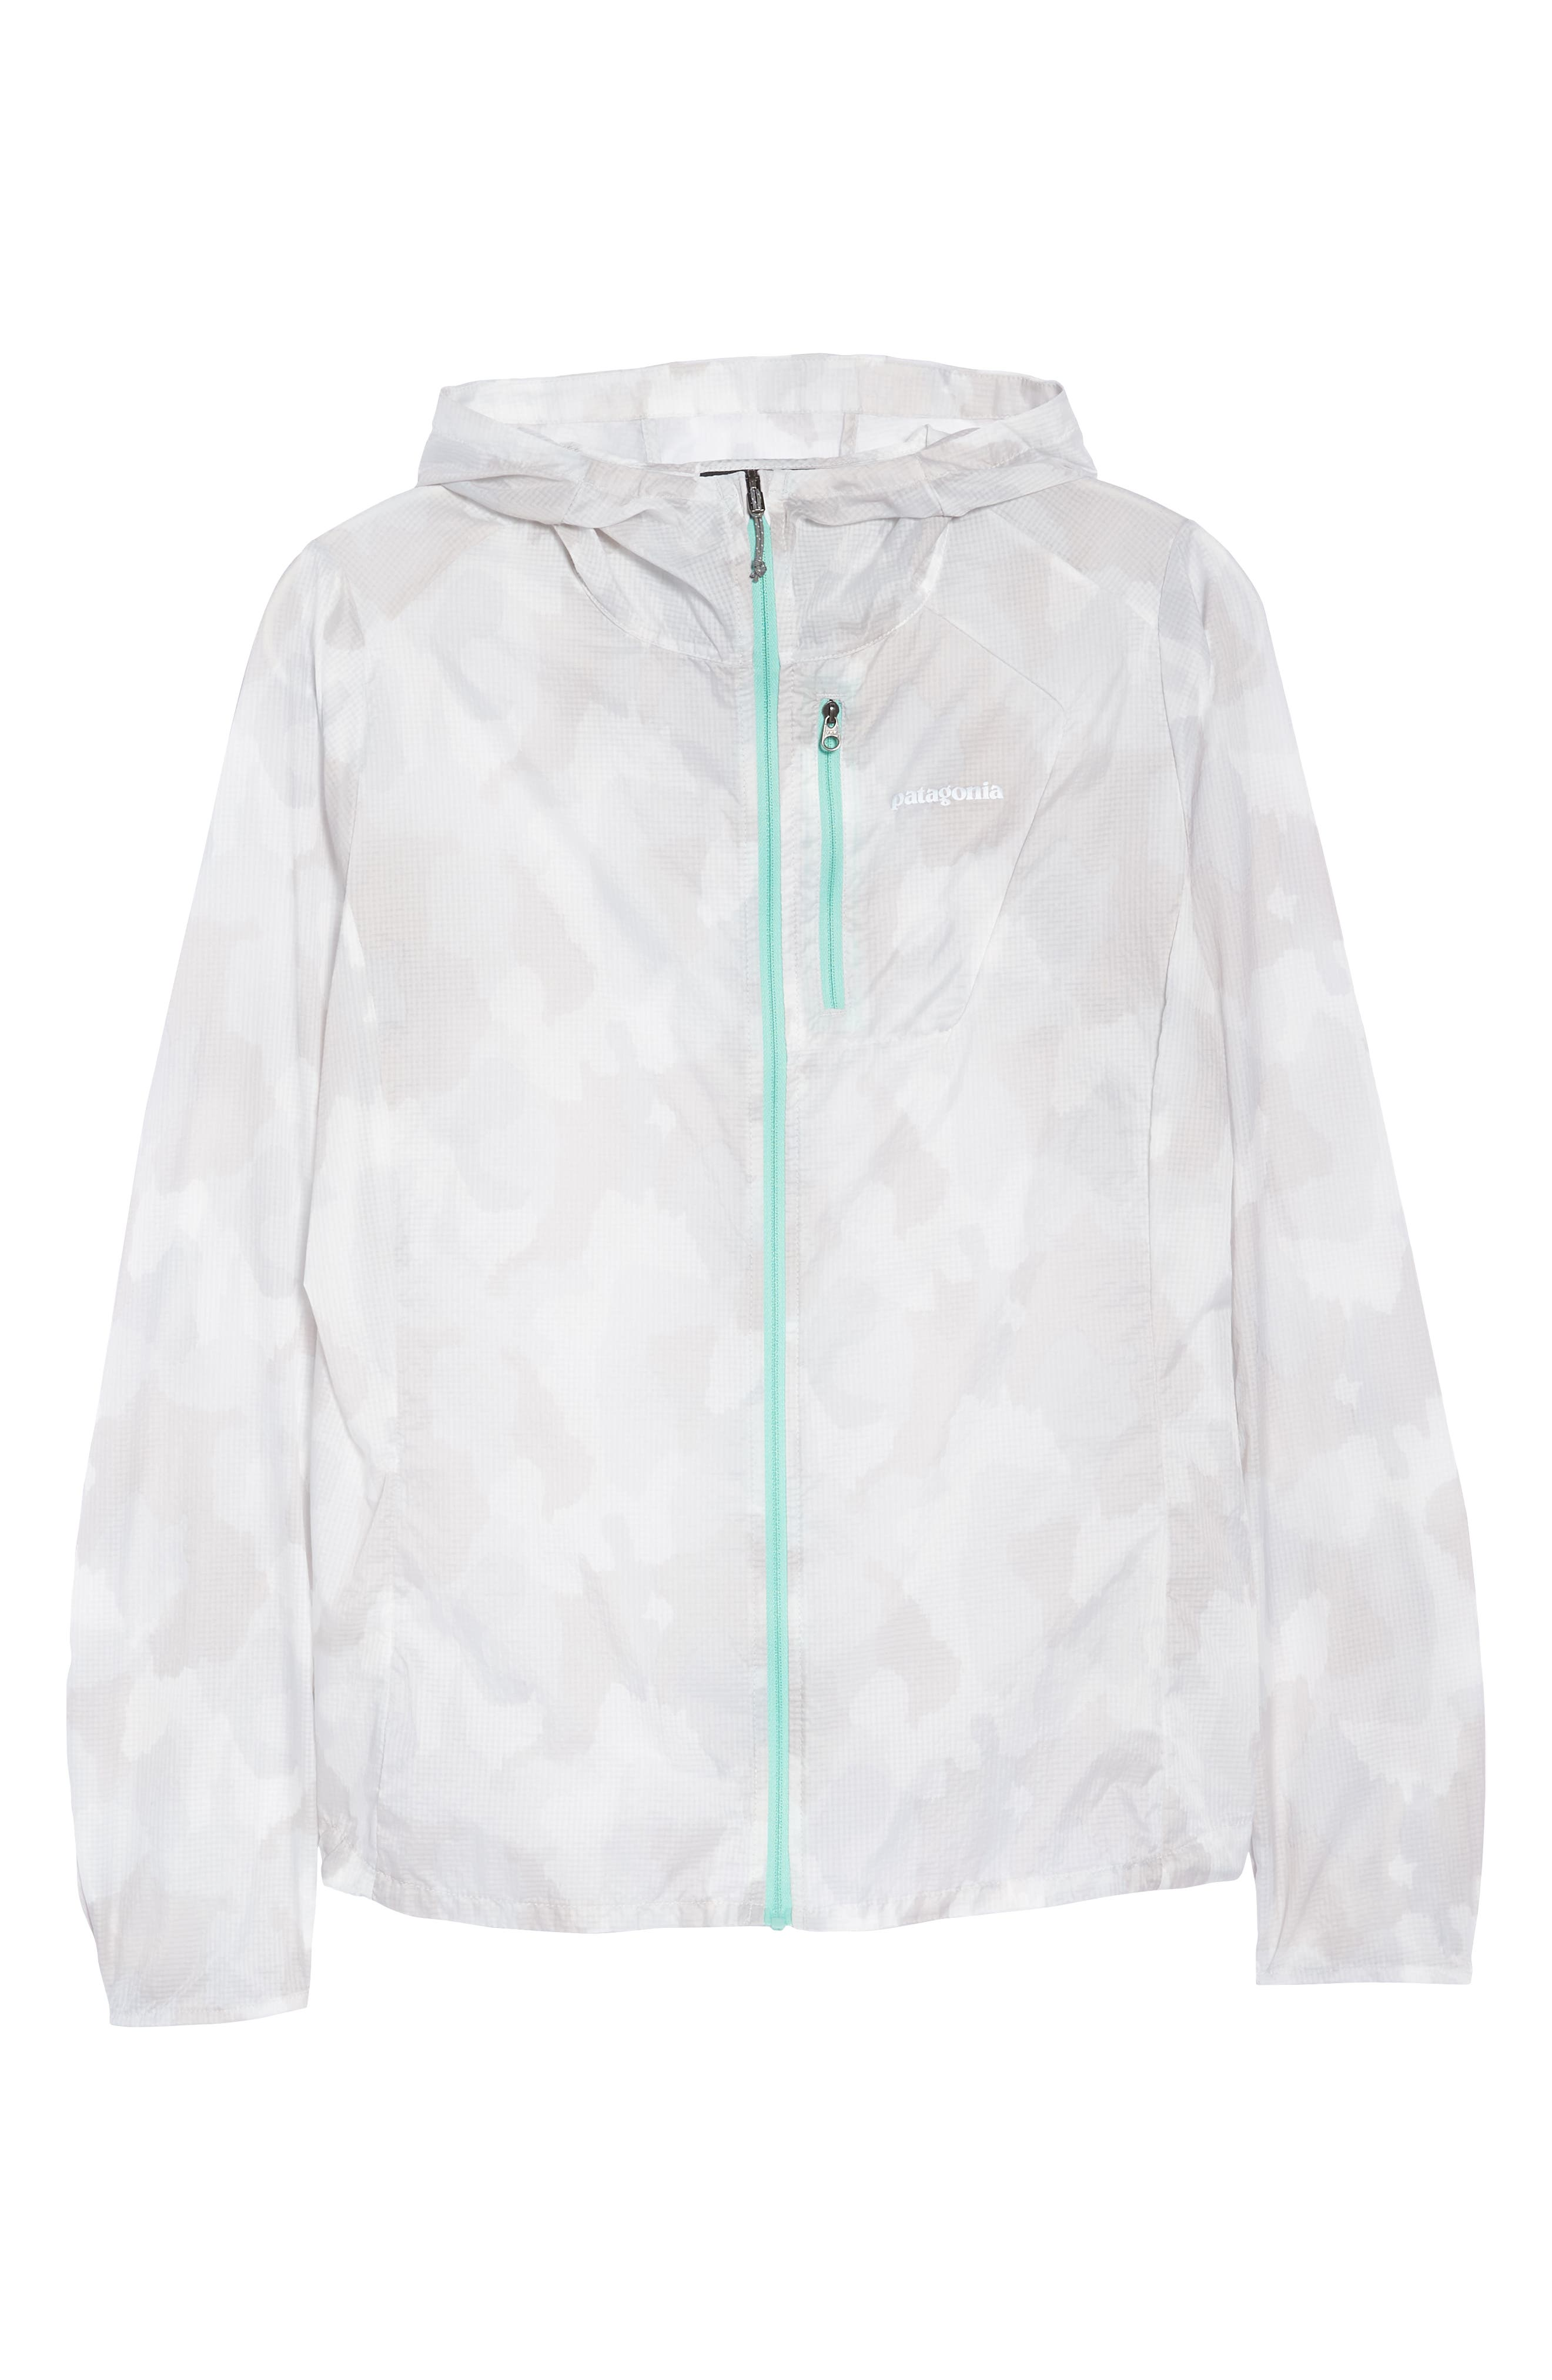 Houdini Water Repellent Jacket,                             Alternate thumbnail 9, color,                             Bunker Camo Tailored Grey